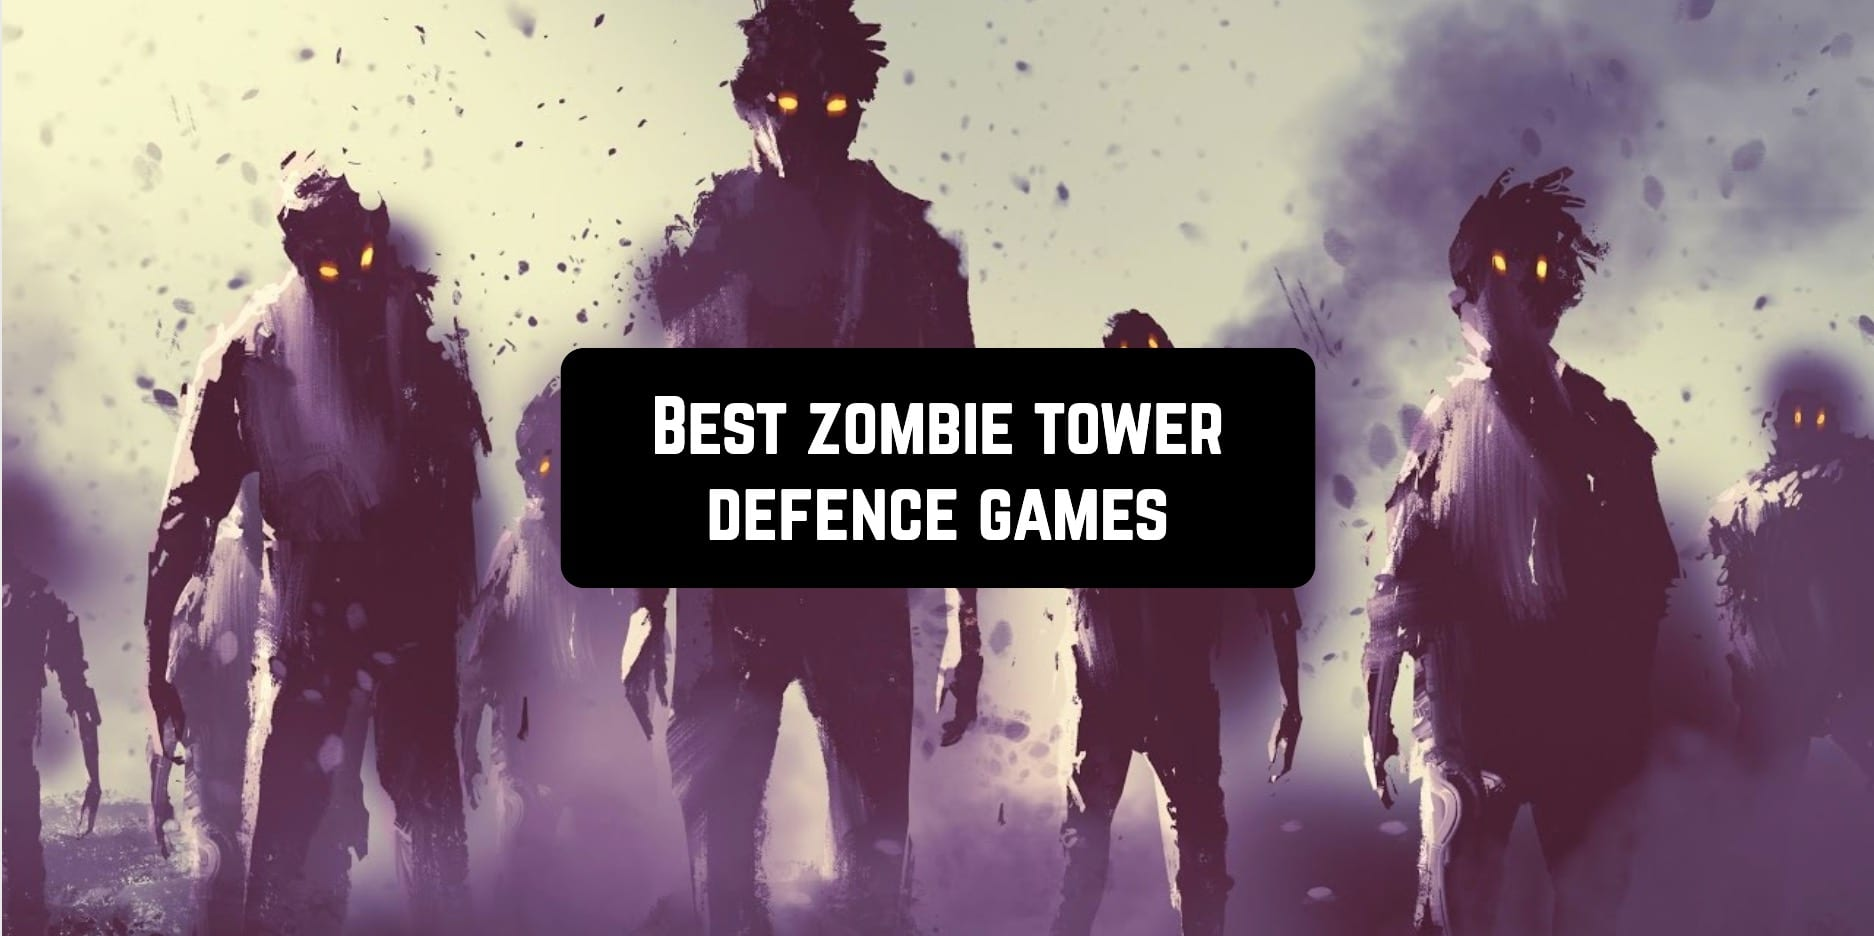 Best zombie tower defence games